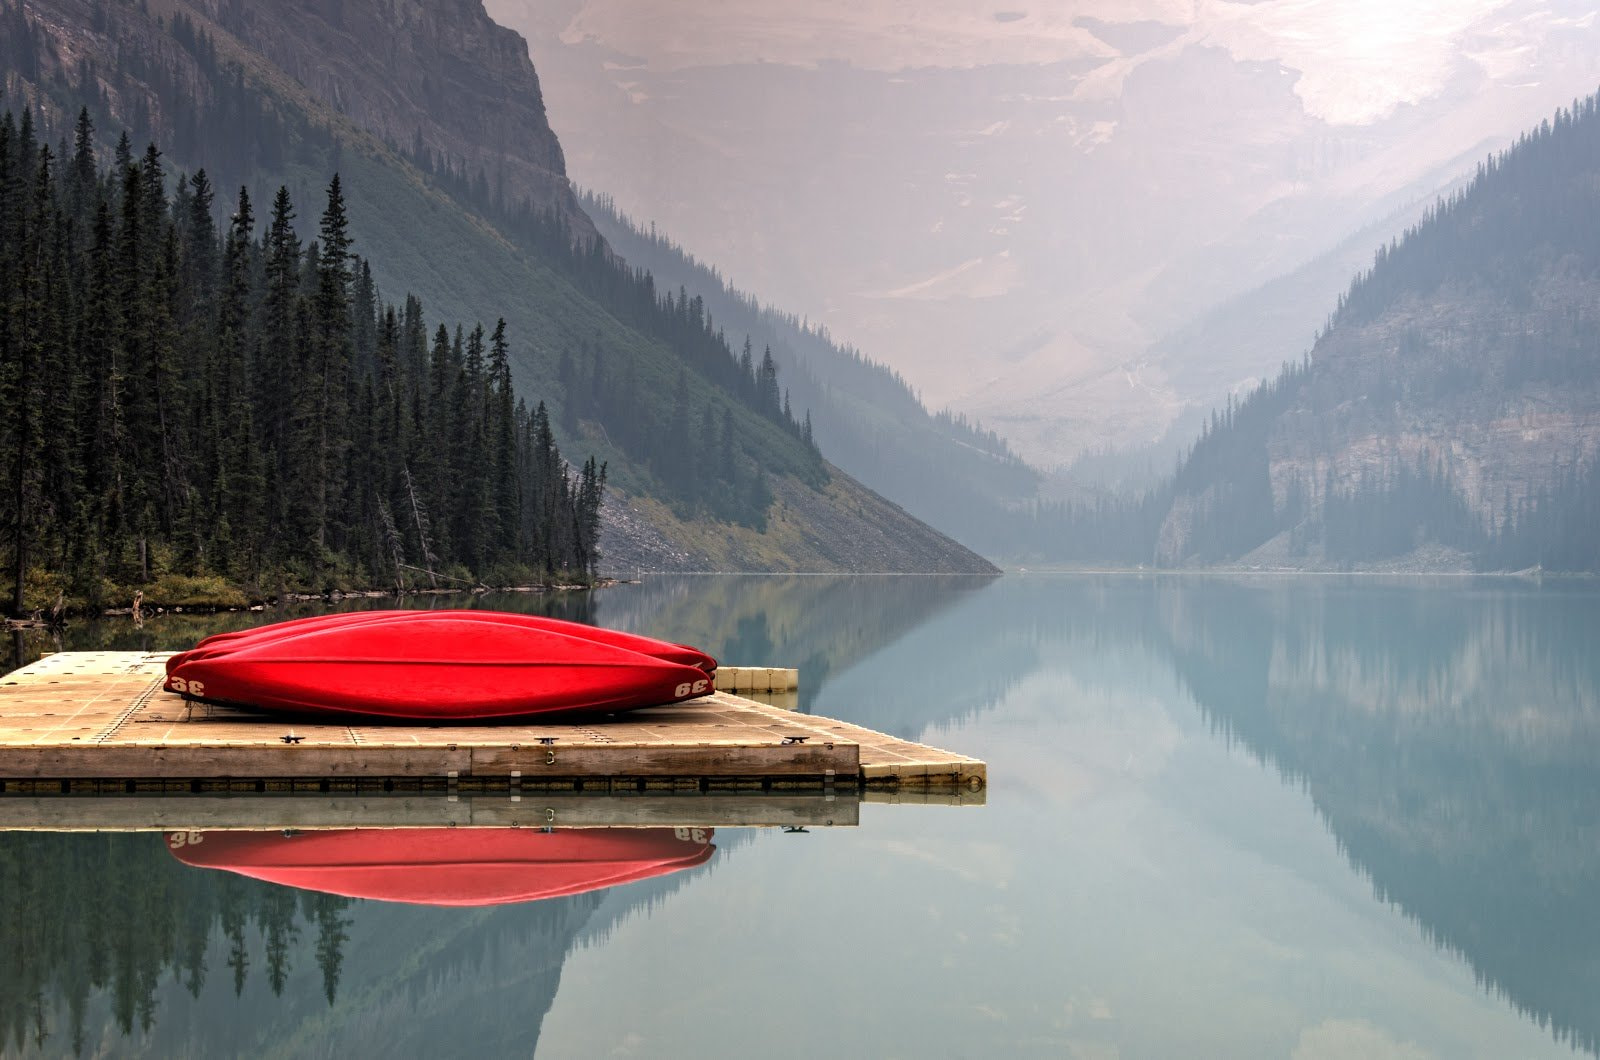 Red boat lying on a dock in in the middle of a mountain view and cold waters photo by Faye Cornish